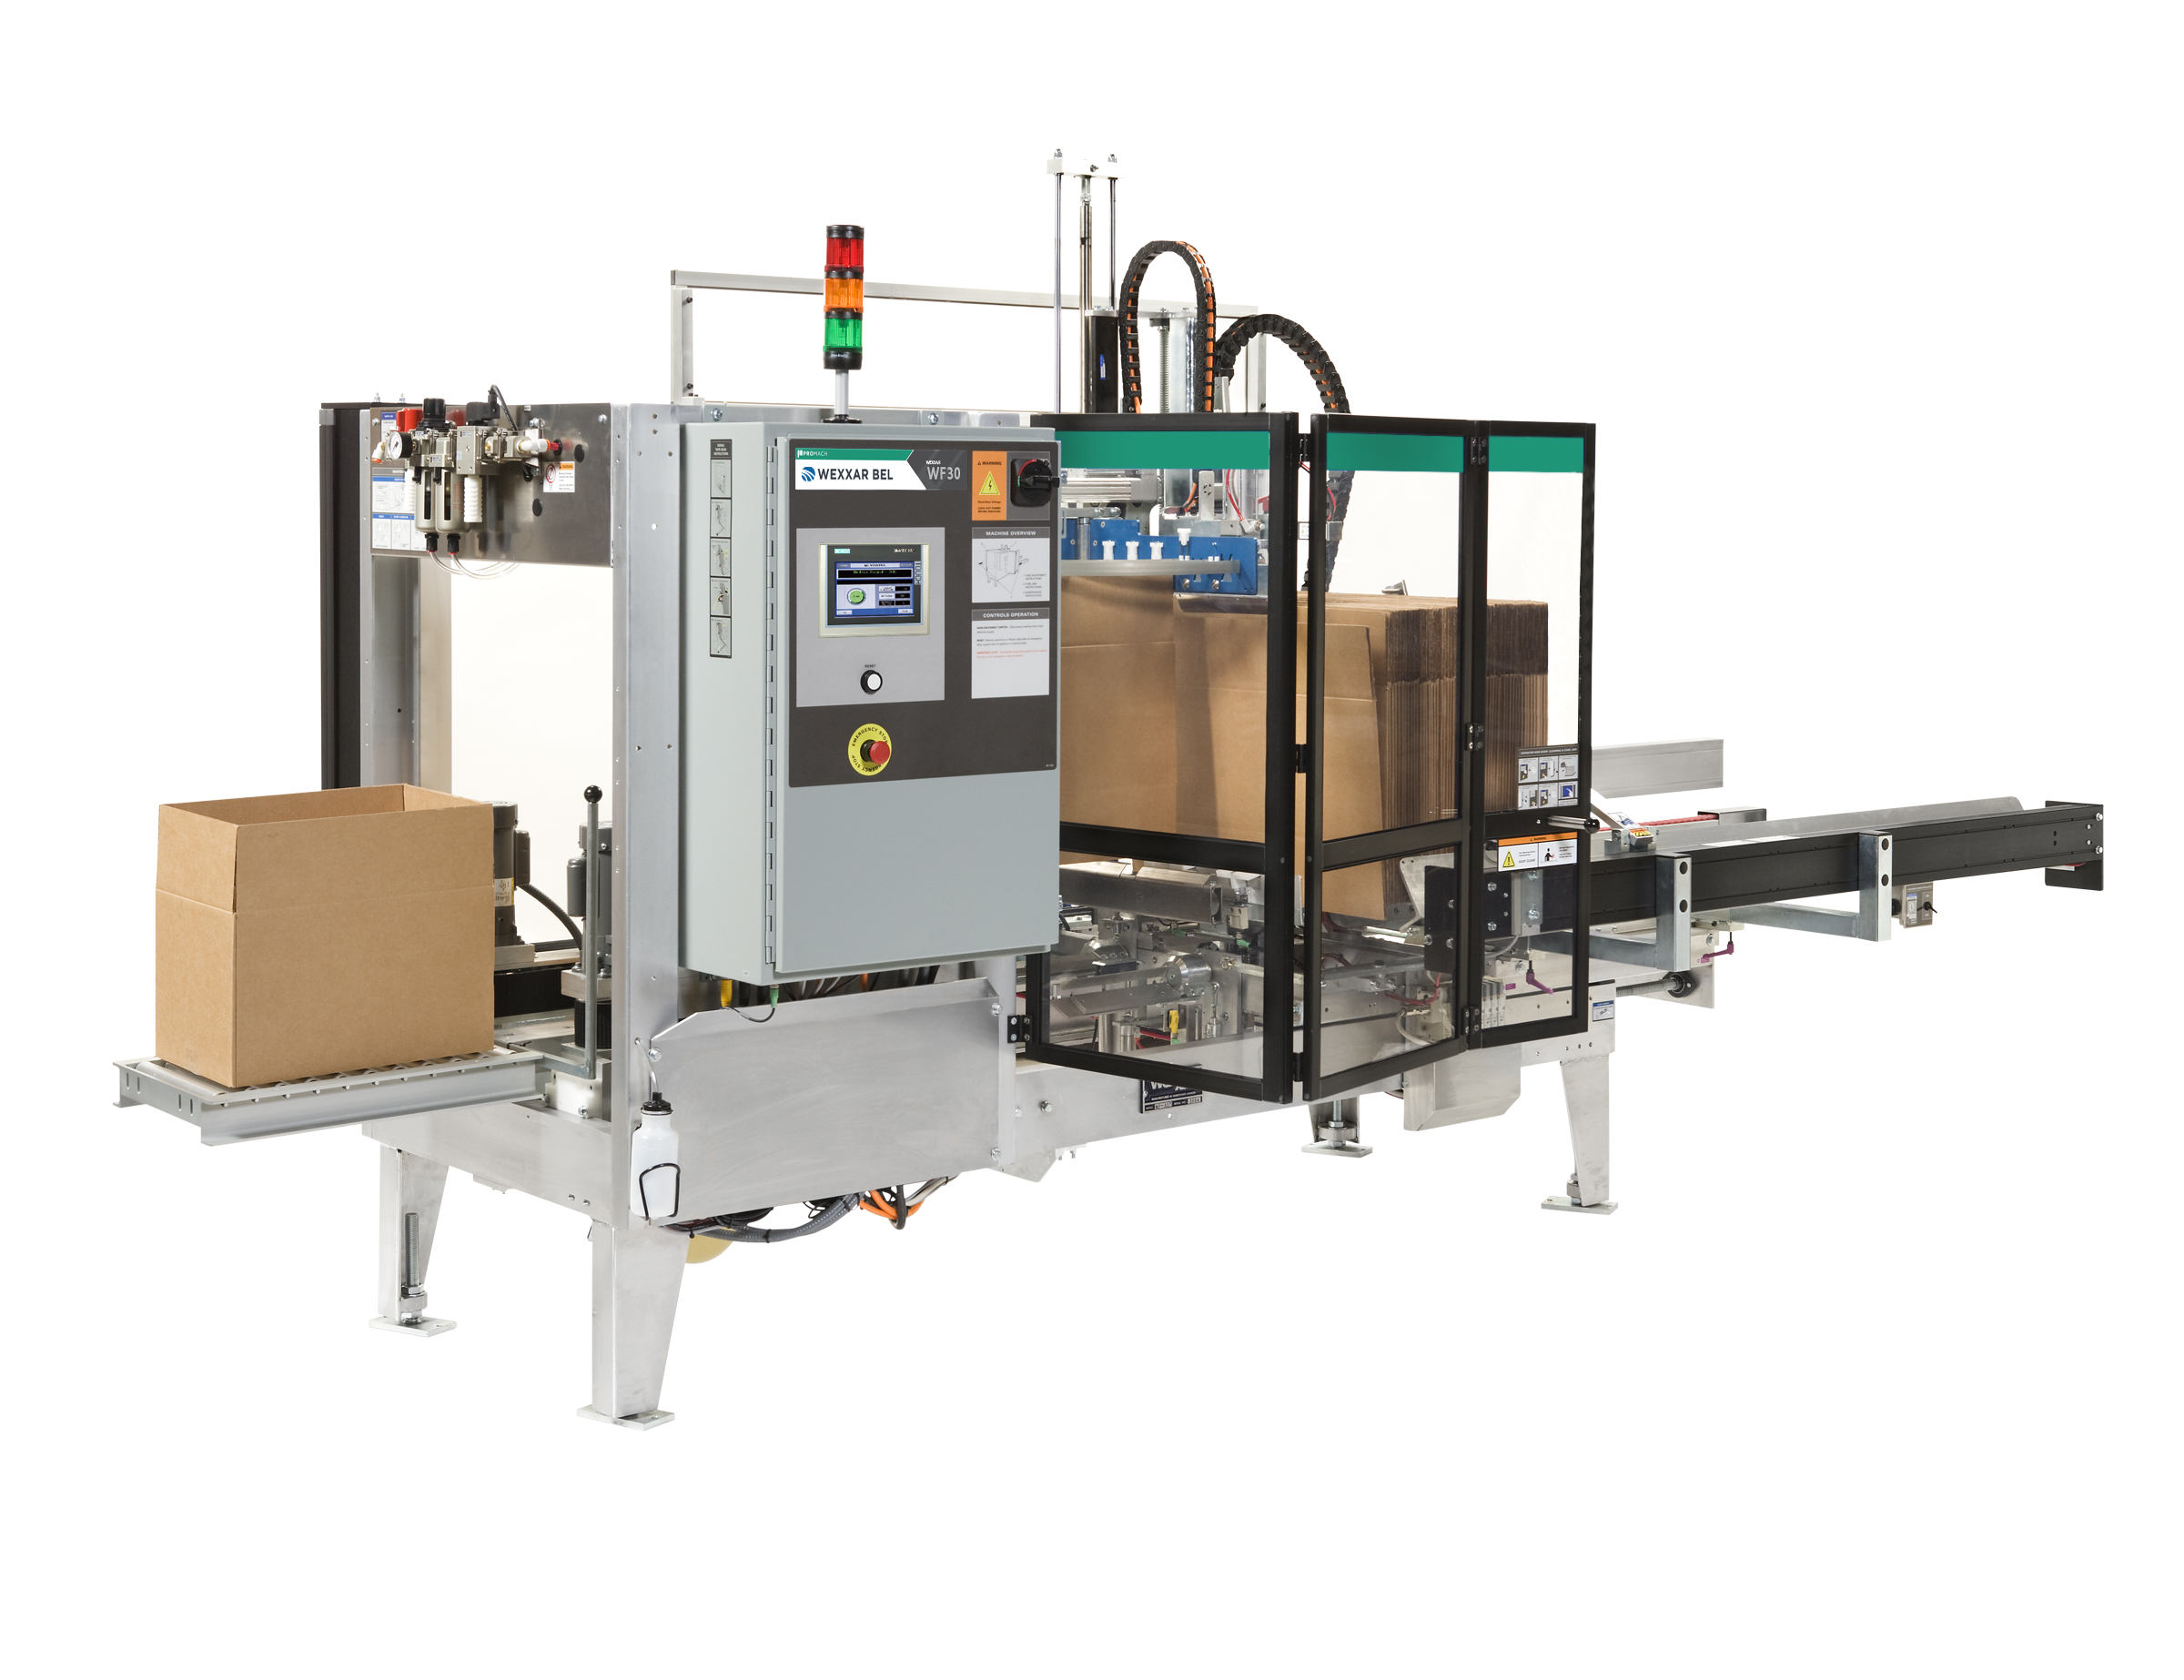 WF30 T - Fully Automatic Case Former and Case Erector - Case Forming & Case Erecting Systems